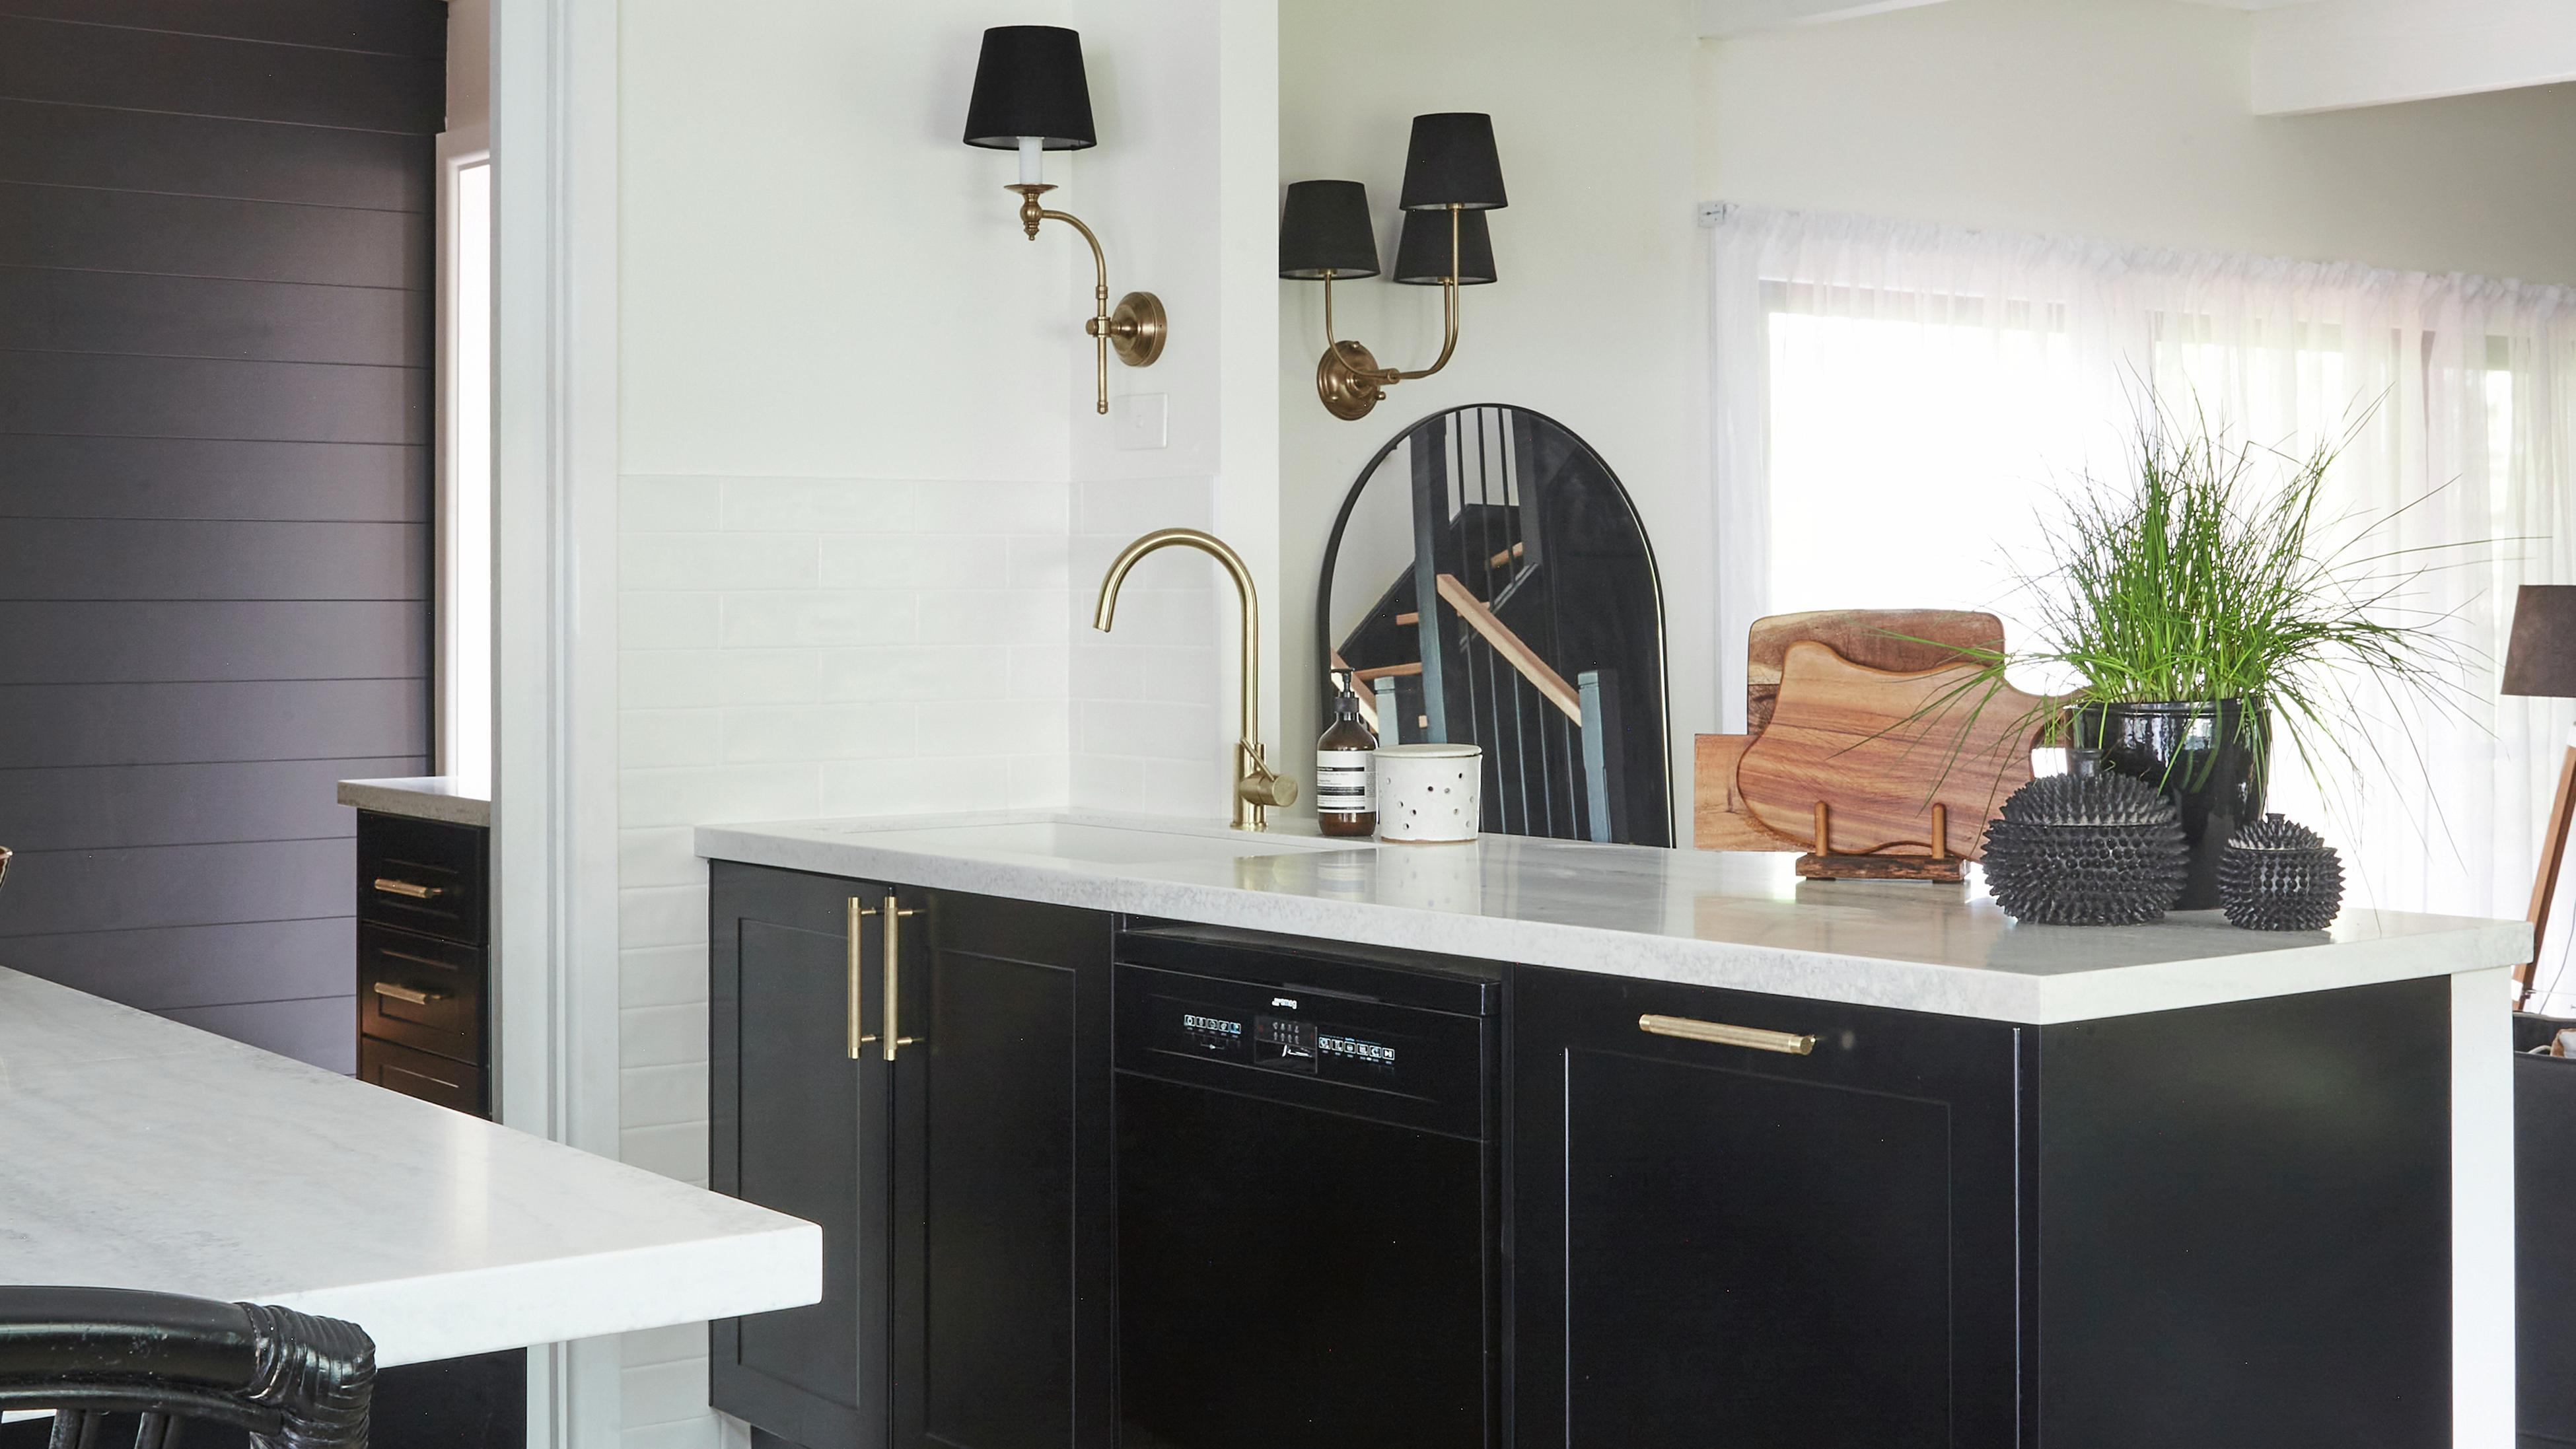 Modern monochrome ktichen with black cabinetry, gold coloured sink tap and handles